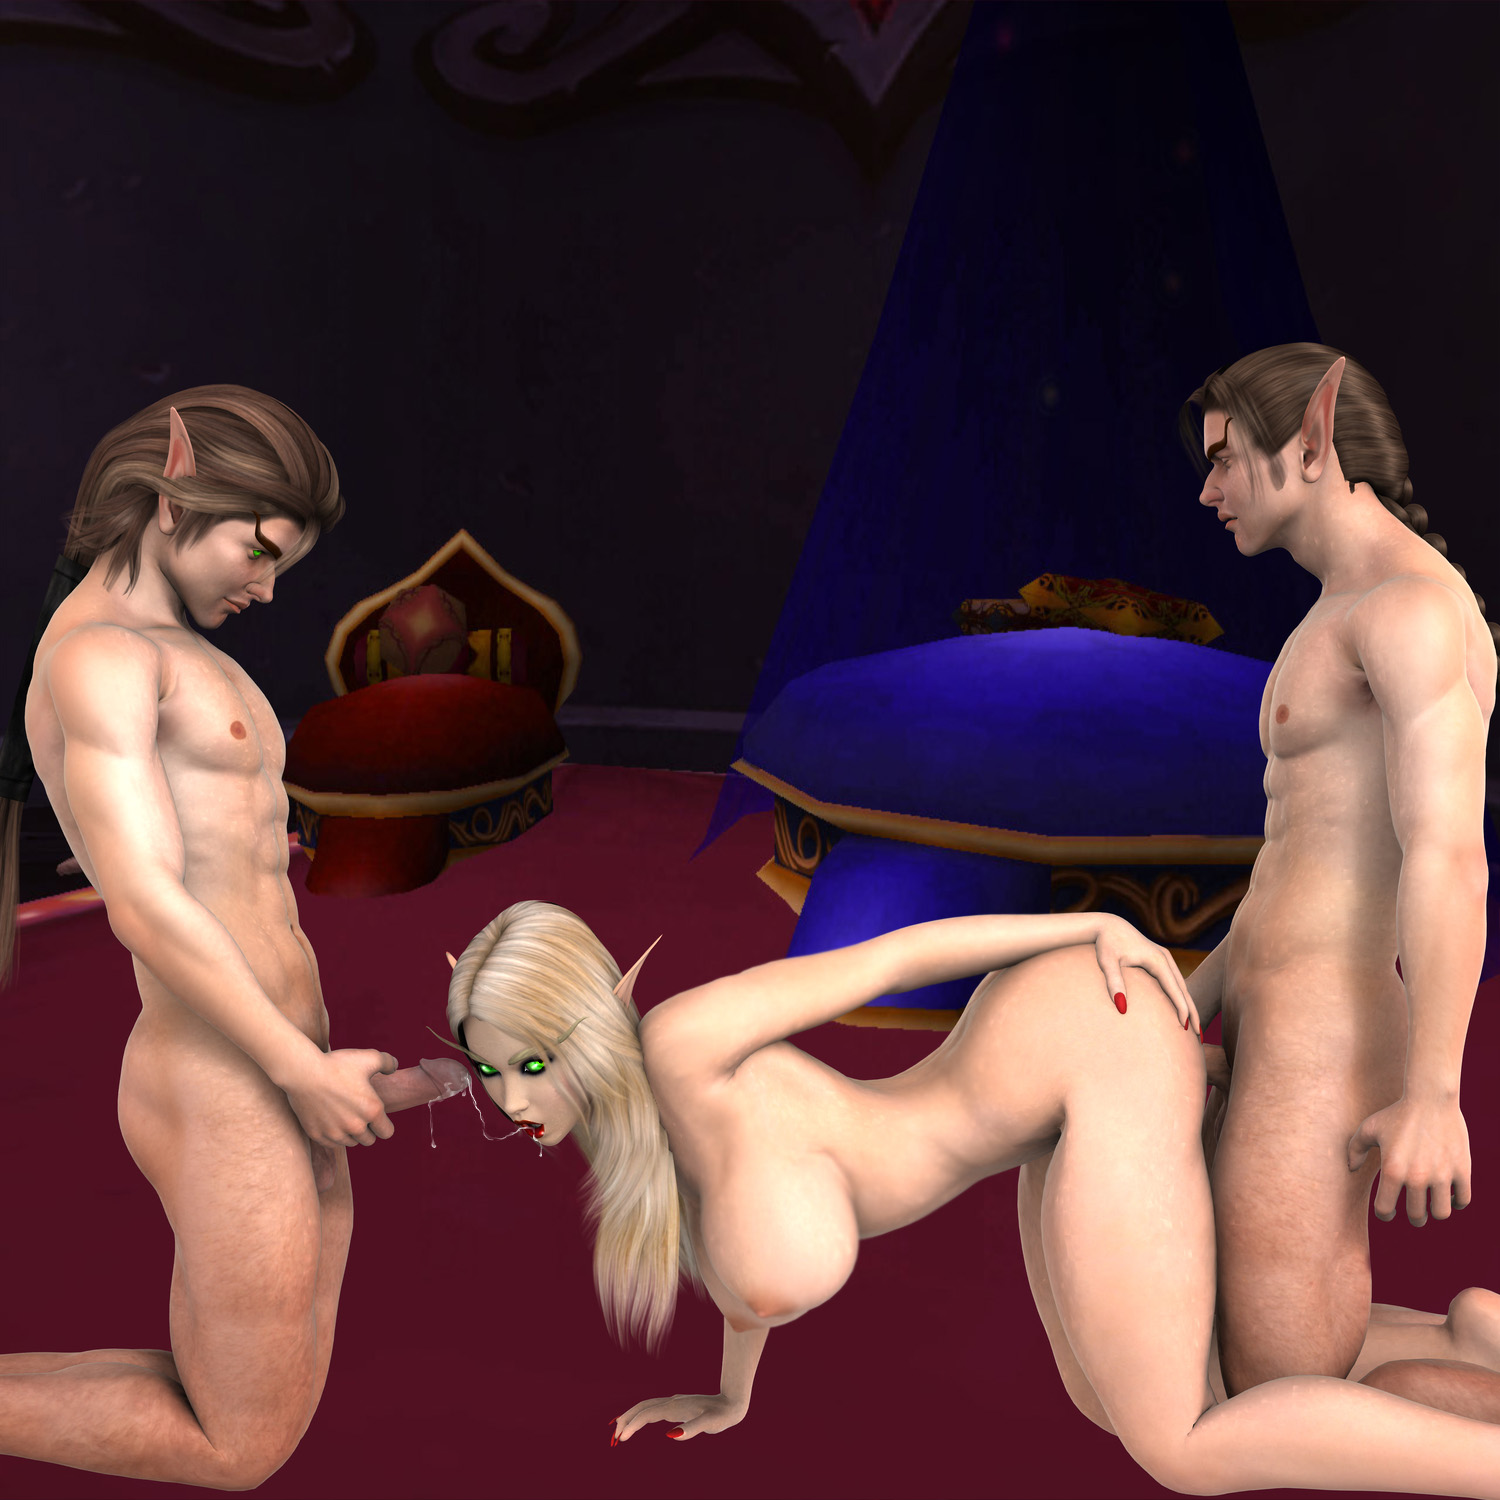 World of porncraft animation erotica galleries